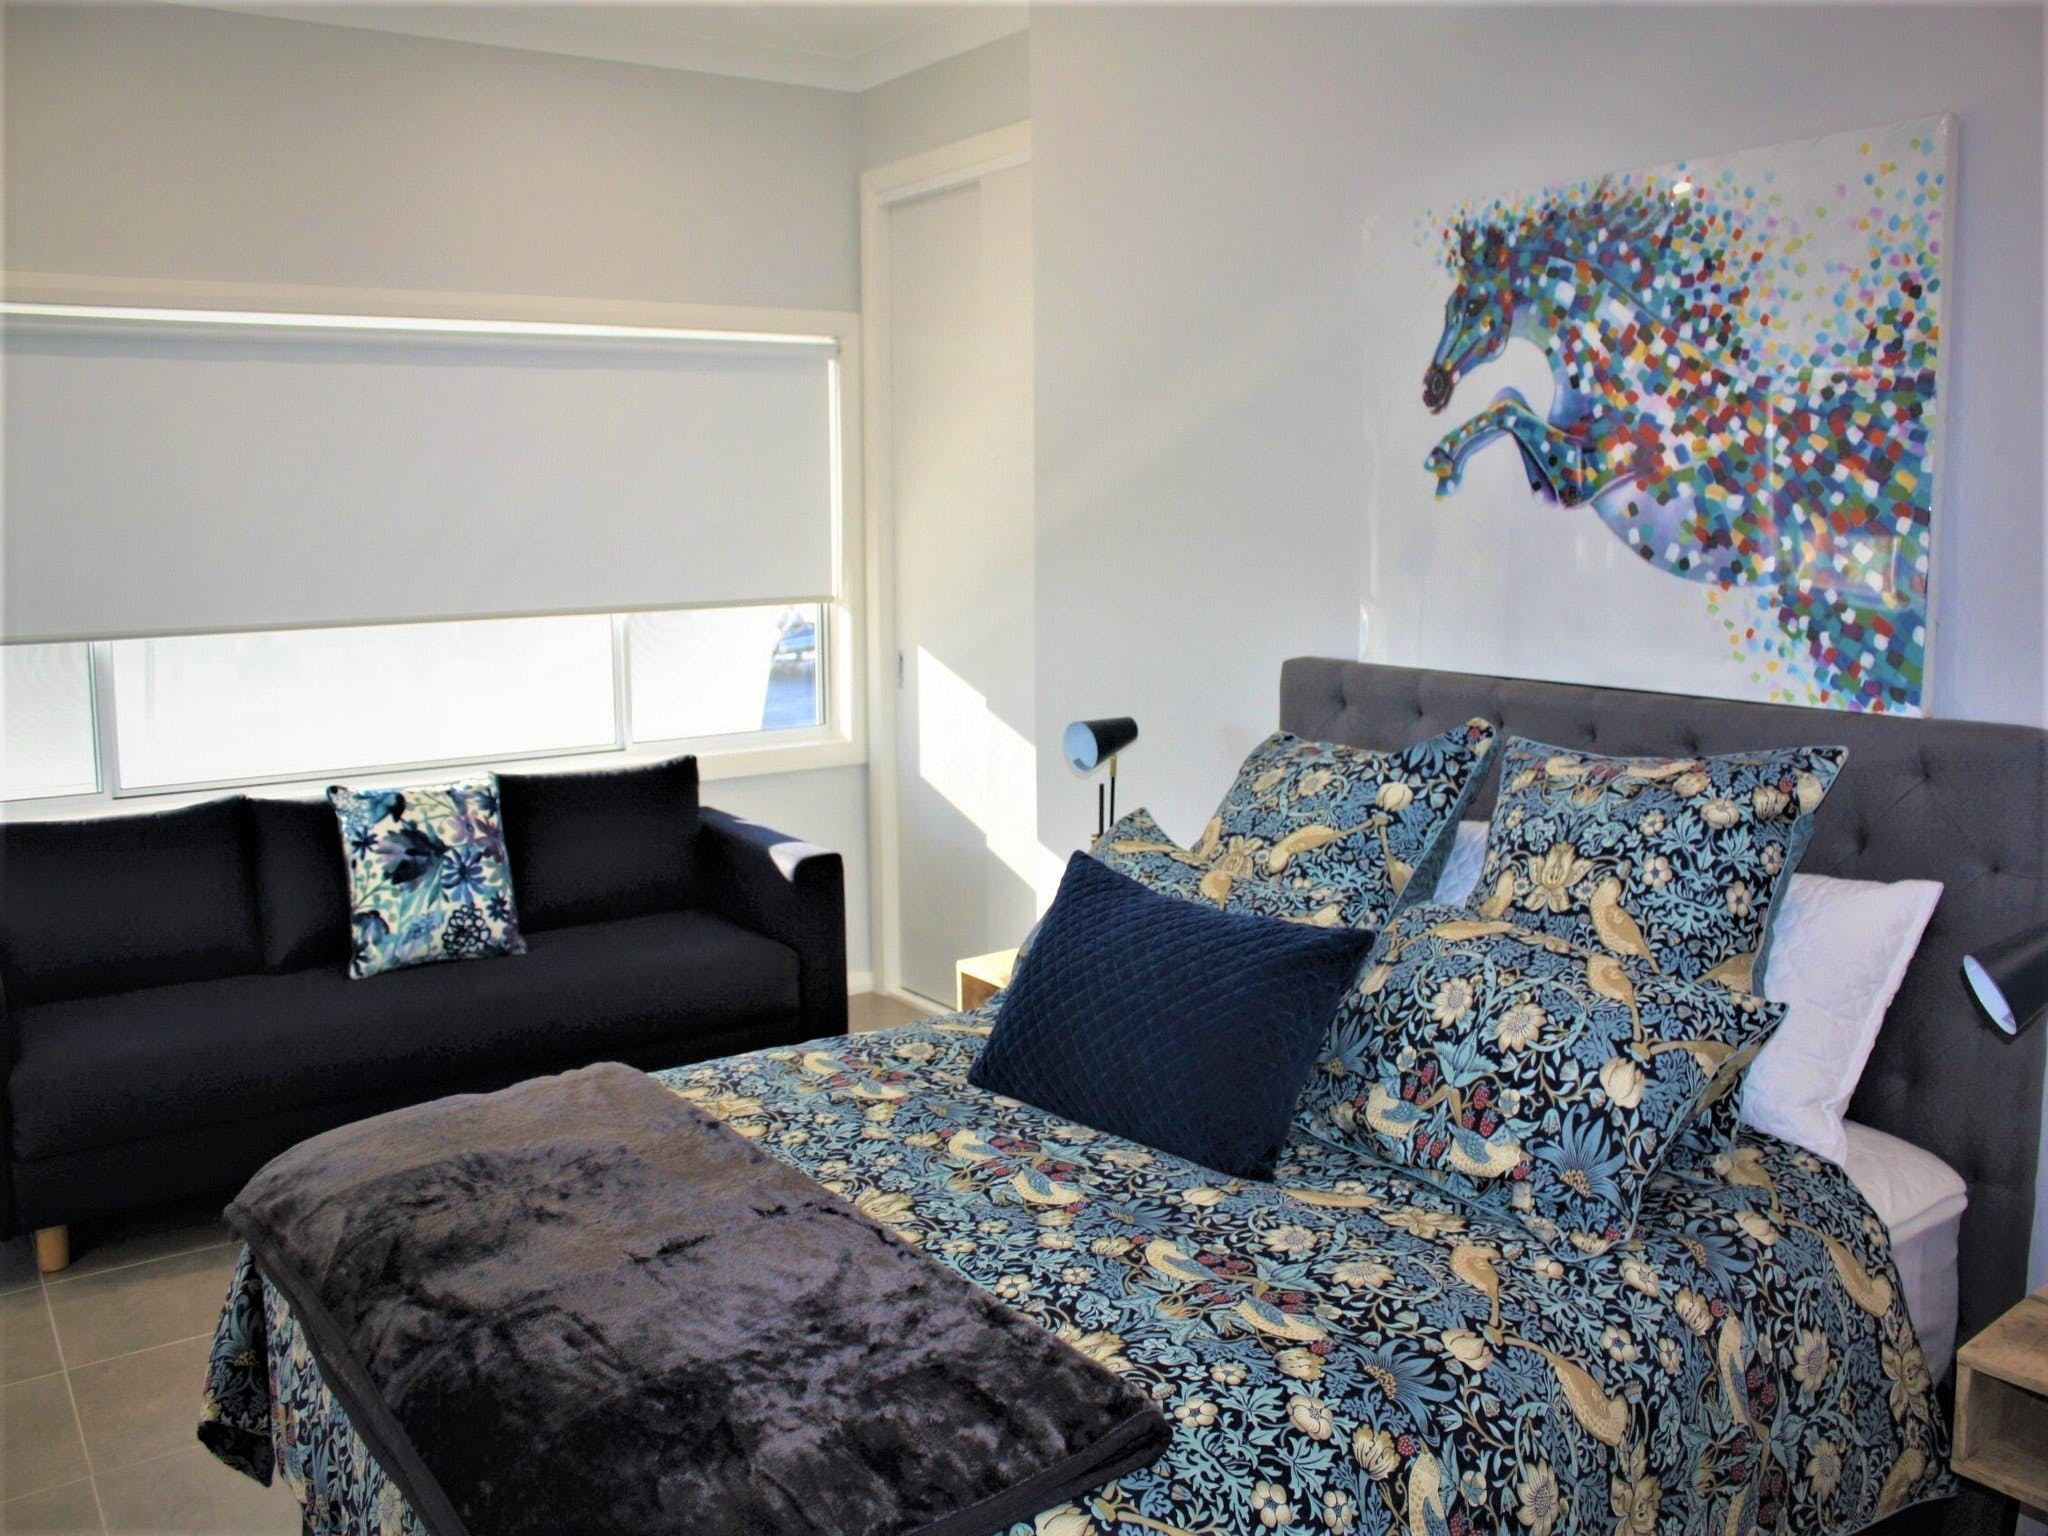 Coolah Shorts - Self Contained Apartments - Accommodation Adelaide